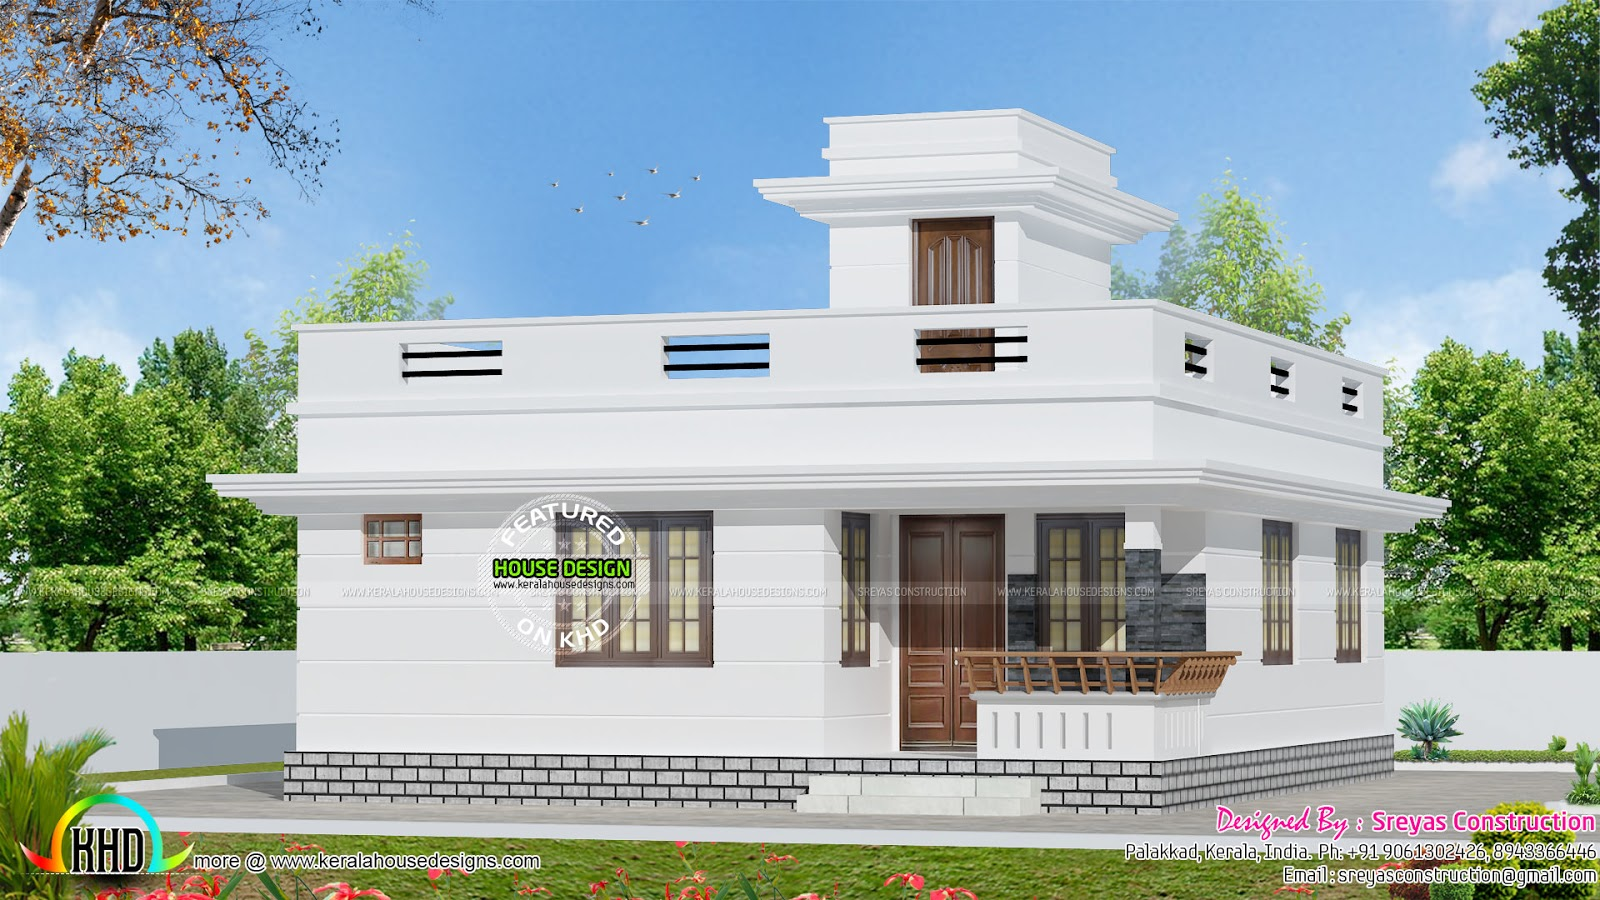 882 sq ft small house architecture kerala home design Small indian home designs photos